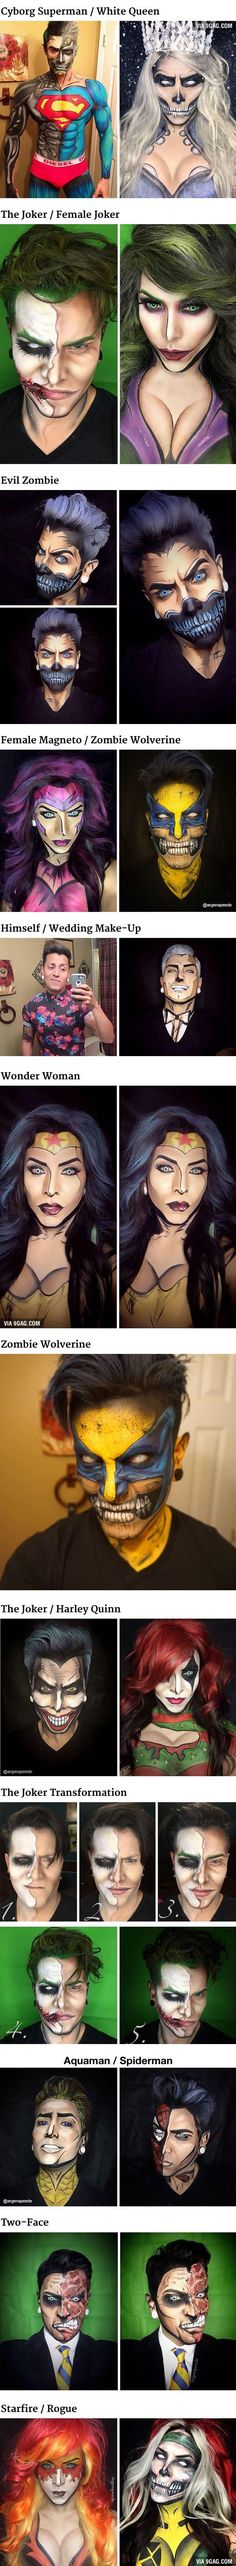 The Artist Turns Himself Into Marvel And DC Characters Using Only Makeup | DailyFailCenter